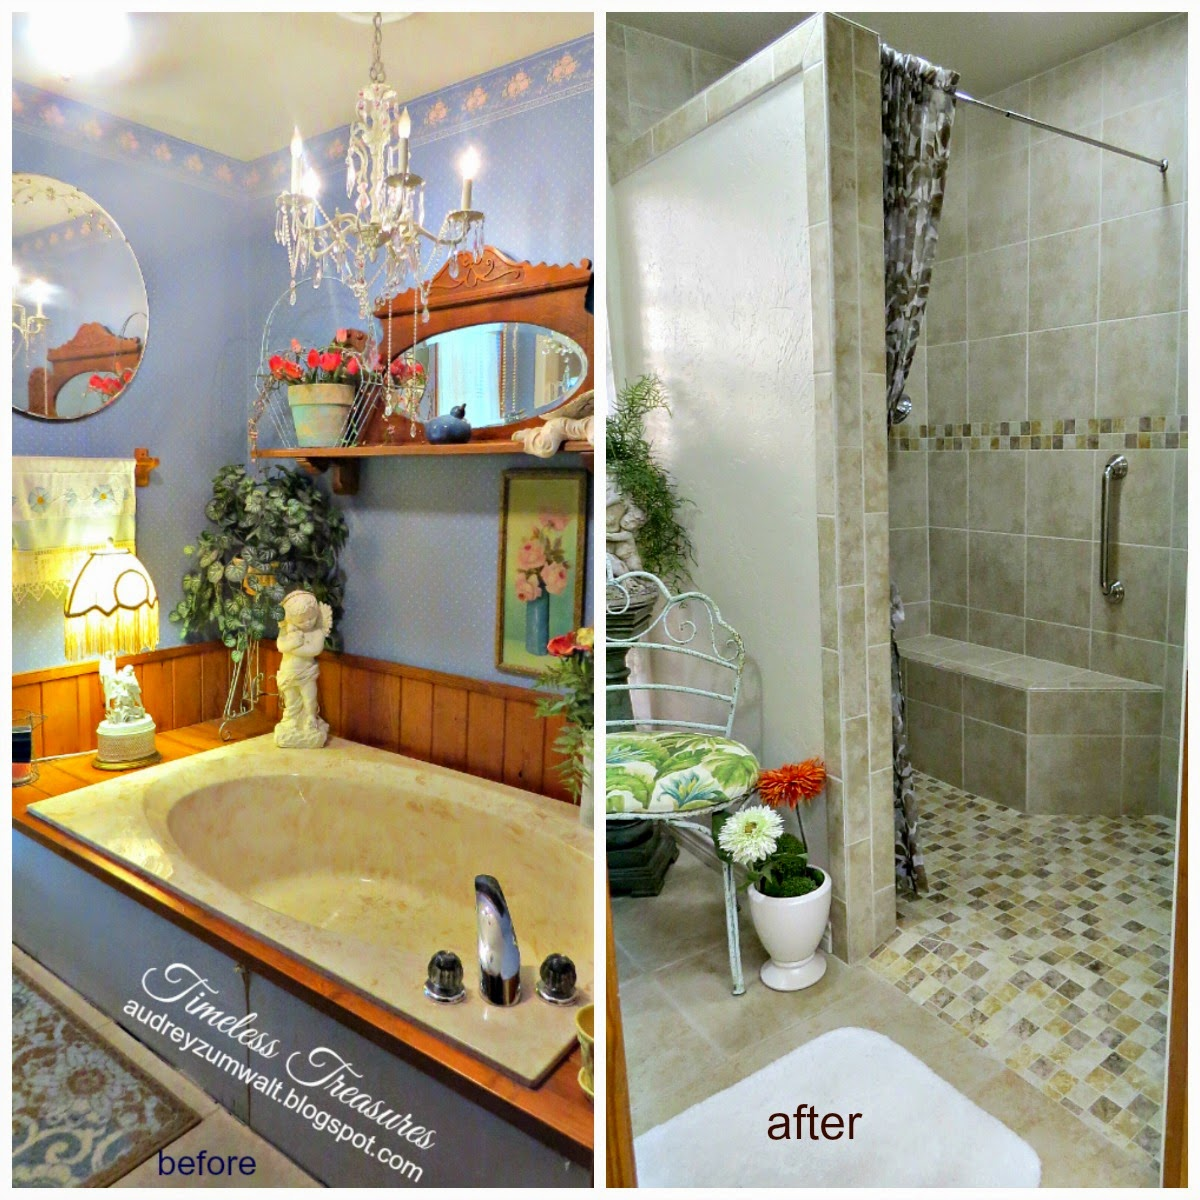 Remodel Master Bathroom Contractors In Palm Springs Ca: Timeless Treasures: Master Bath Remodel Before And After